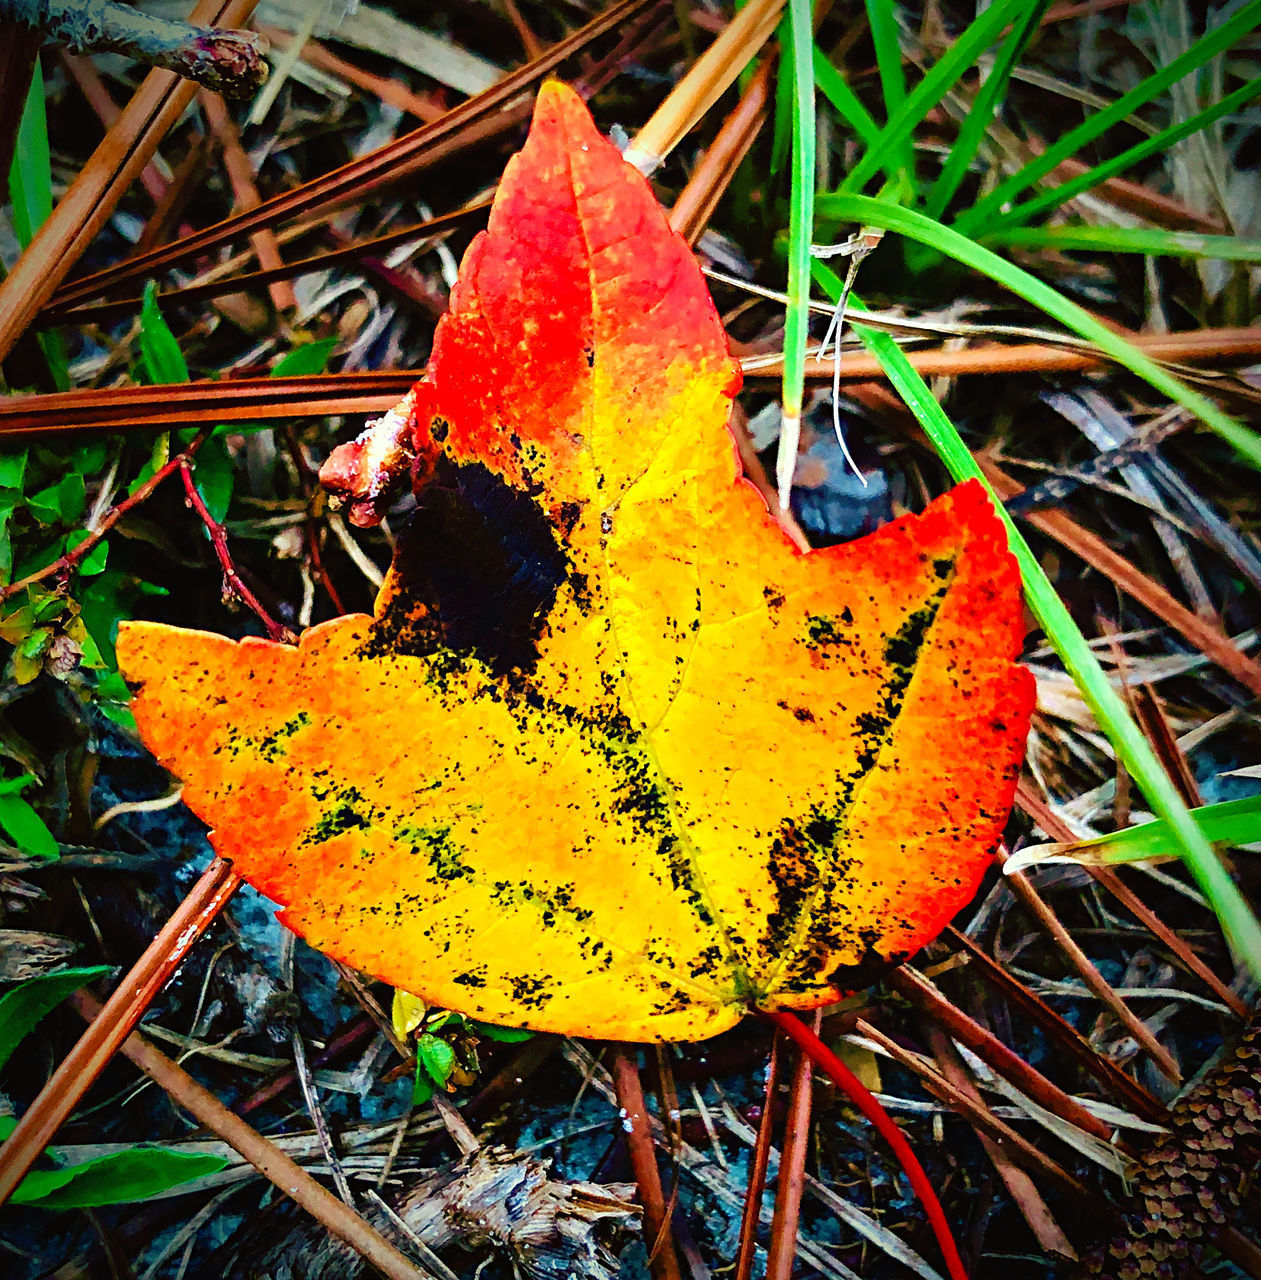 leaf, plant part, close-up, plant, autumn, yellow, nature, change, no people, day, orange color, beauty in nature, land, growth, field, vulnerability, fragility, outdoors, focus on foreground, tranquility, leaves, natural condition